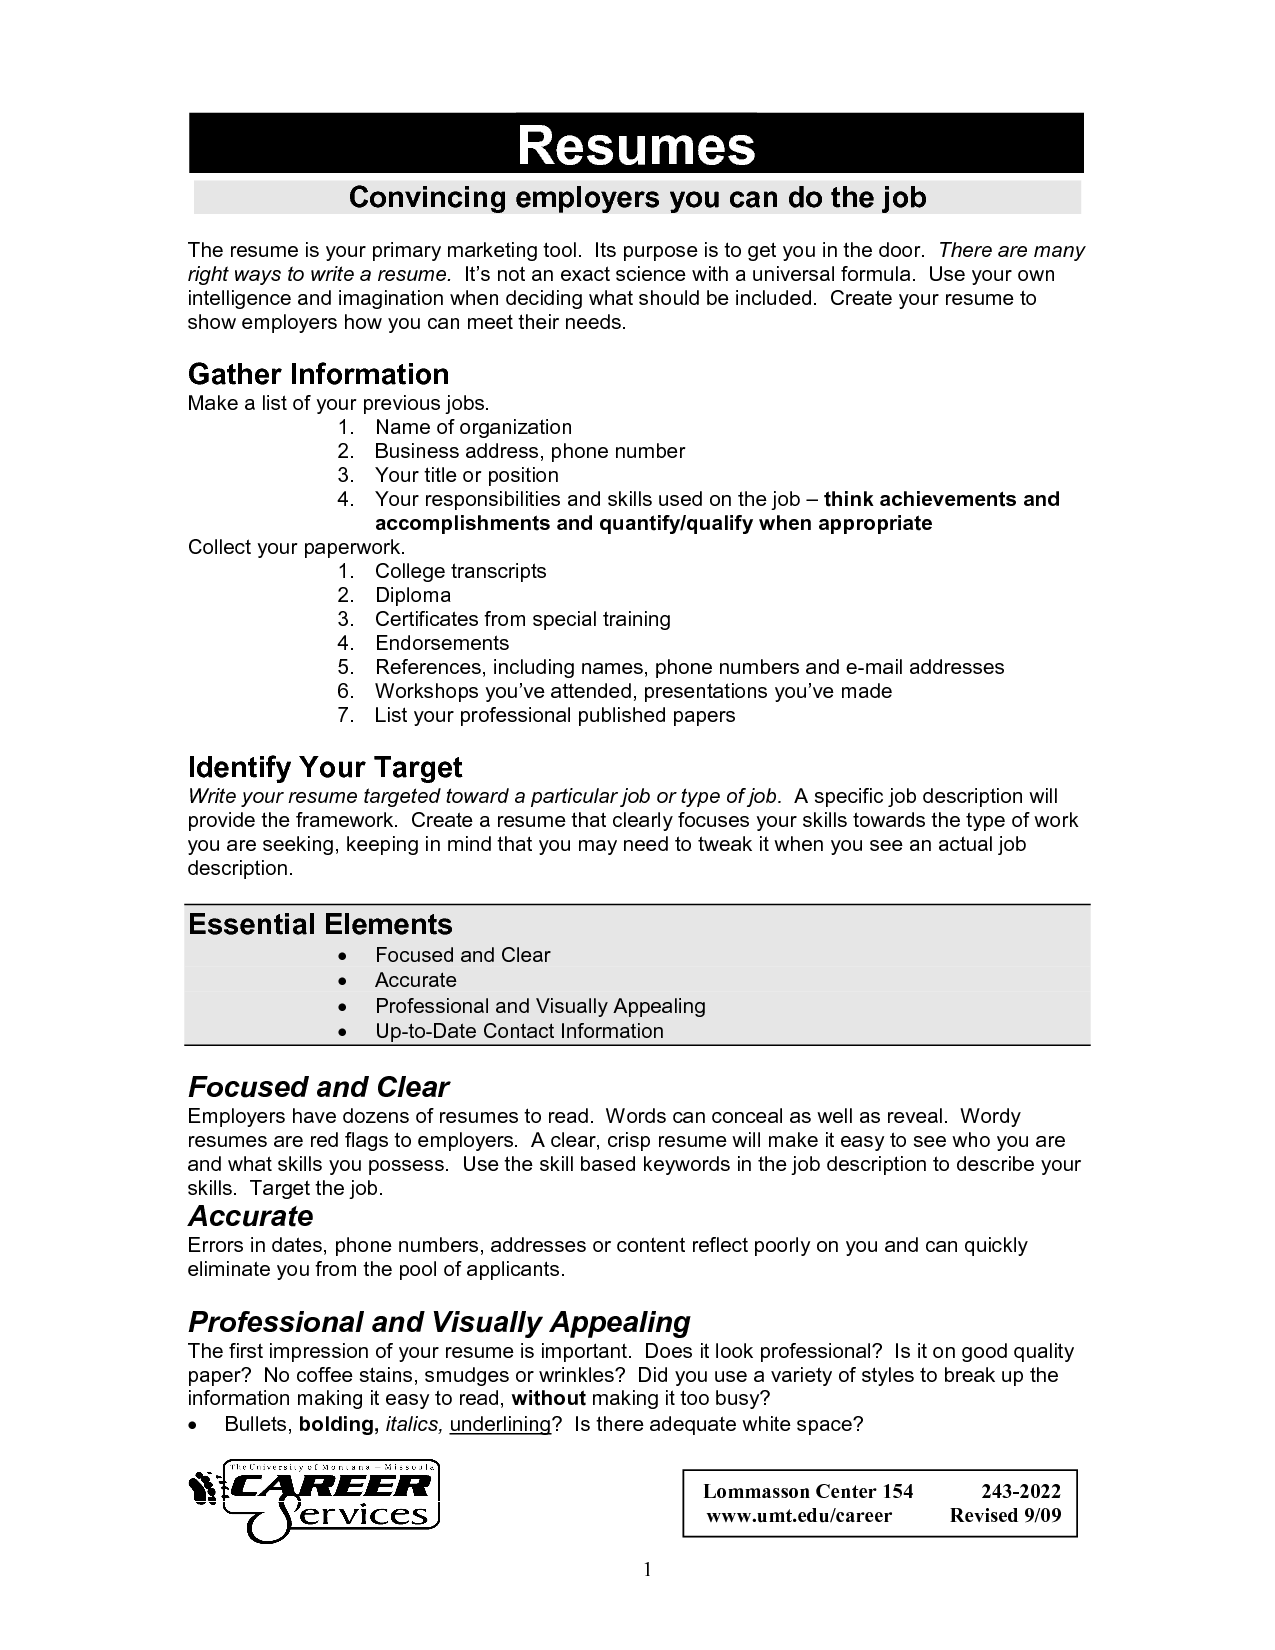 What Good Free Resume Builder Templates And Best Writing Software  How To Do A Good Resume Examples